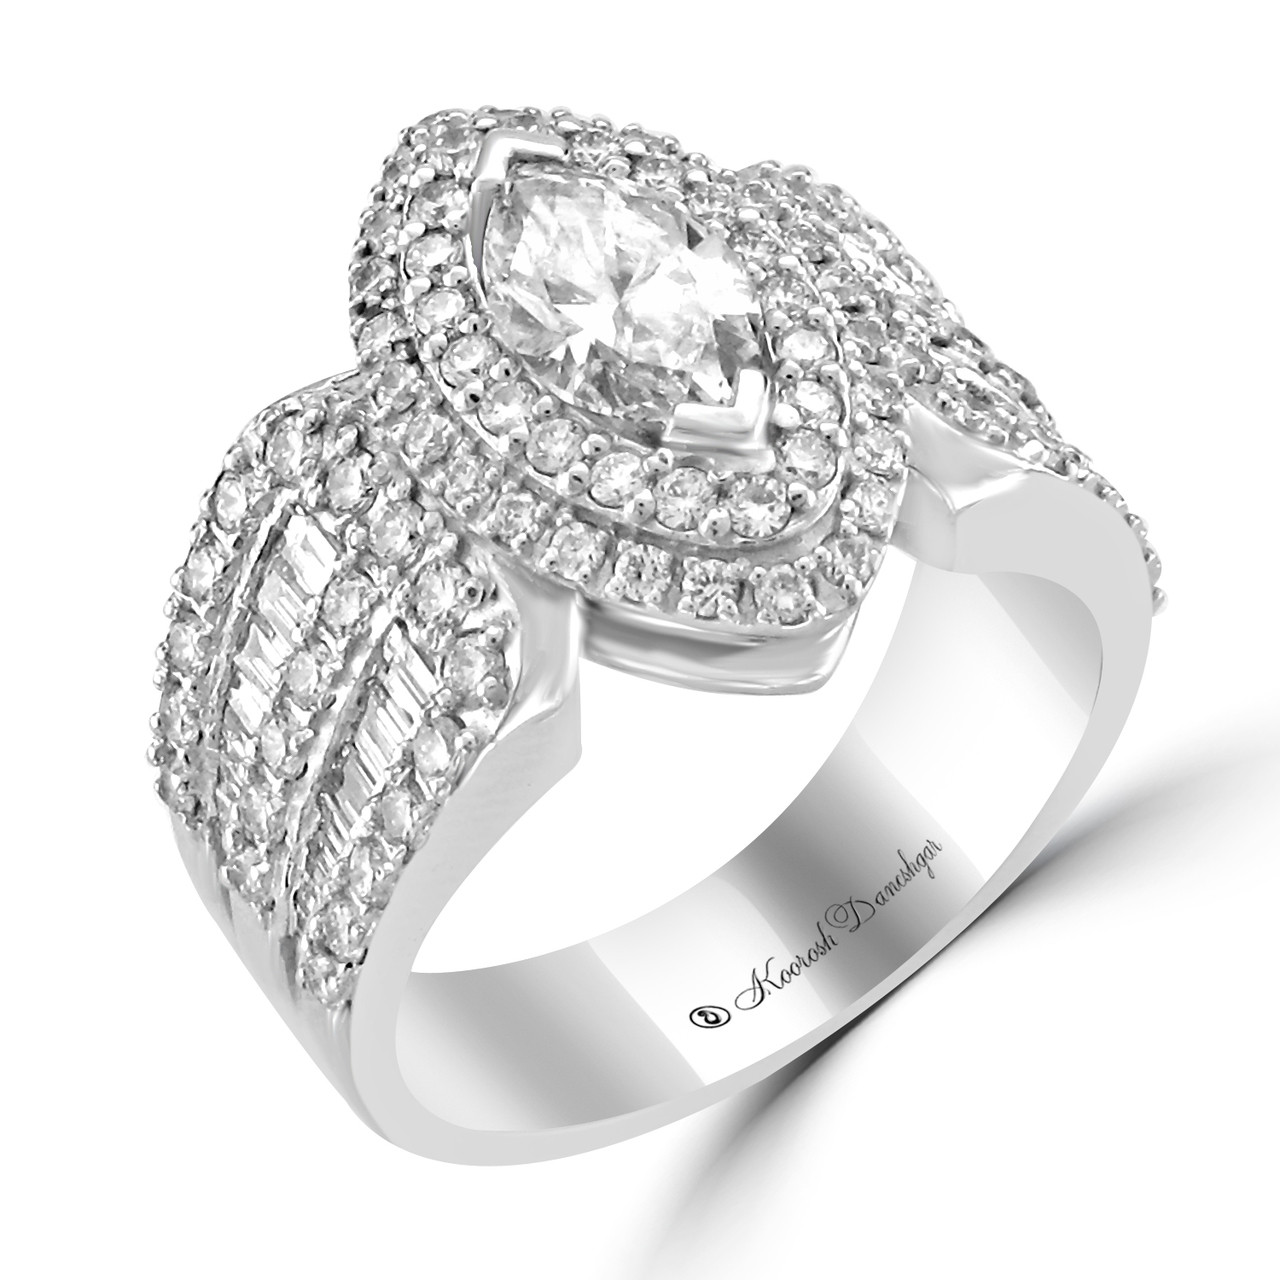 brereton jewellers diamond ring k gold showcase jewellery rings white products engagement